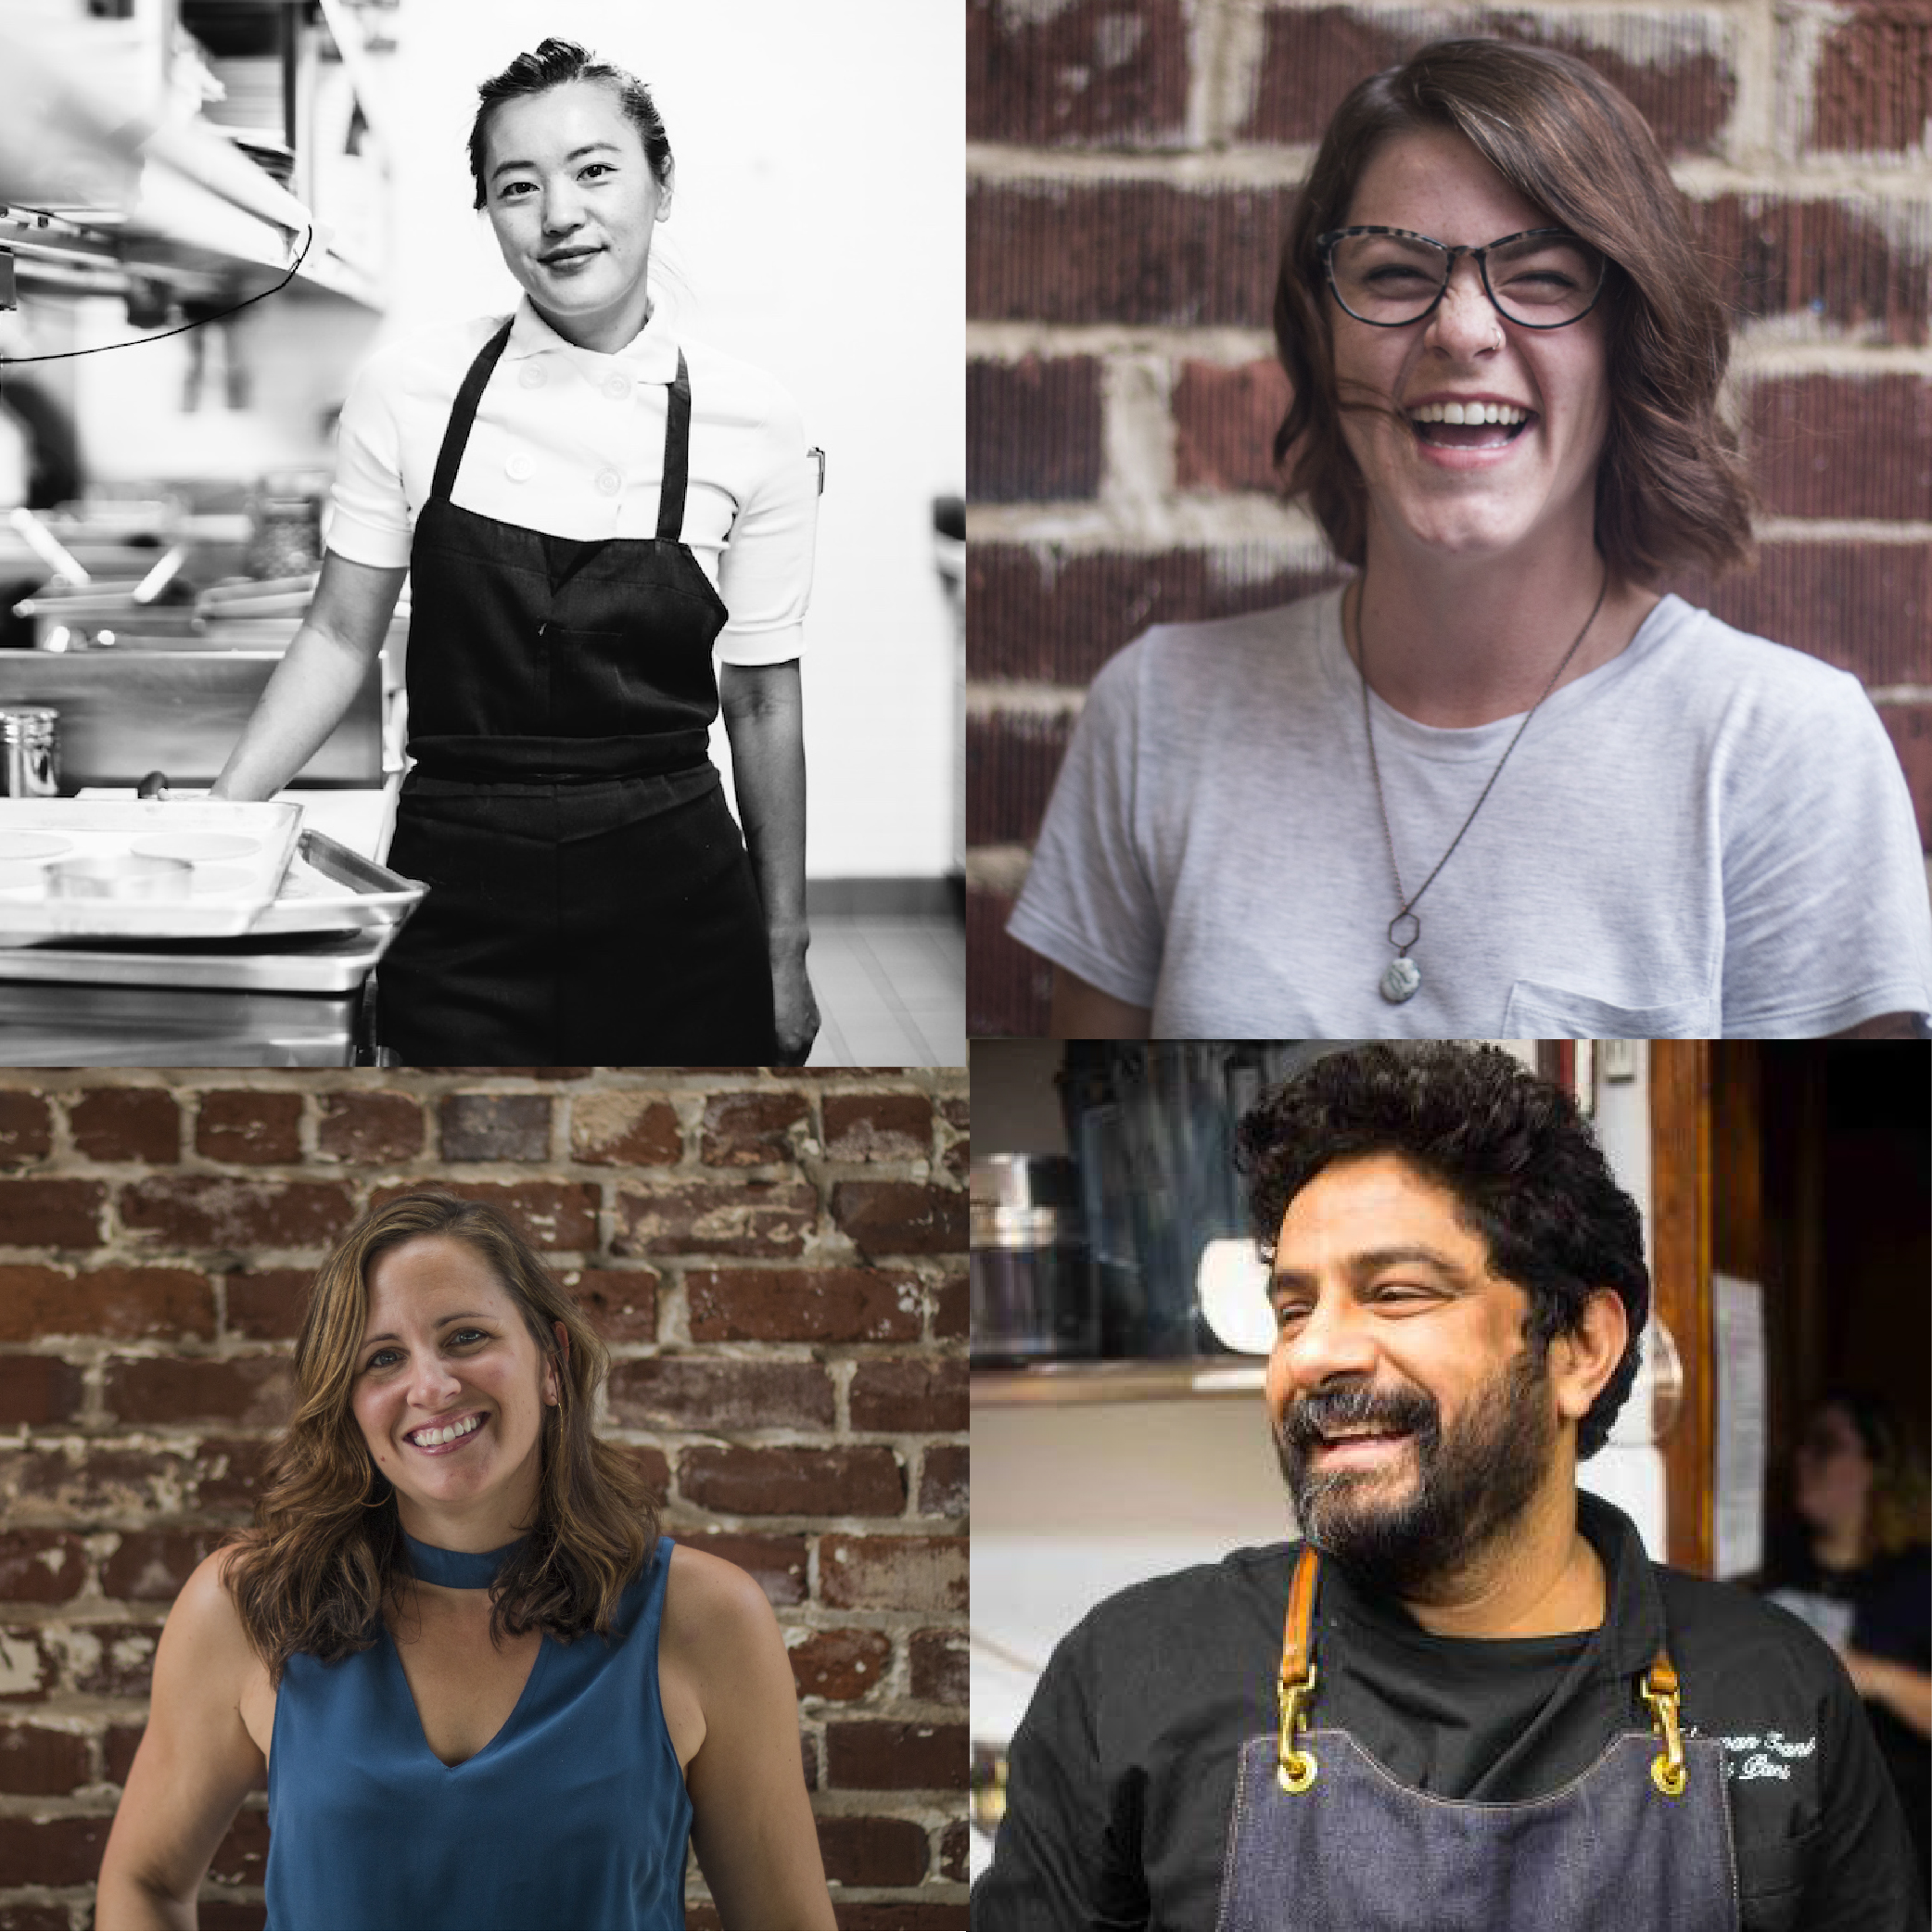 From left to right, top to bottom: Chef Jen Yee, Melissa Davis, Elizabeth Feichter, Meherwan Irani (Images of Meherwan and Jen Yee from the ATL Food & Wine Website)